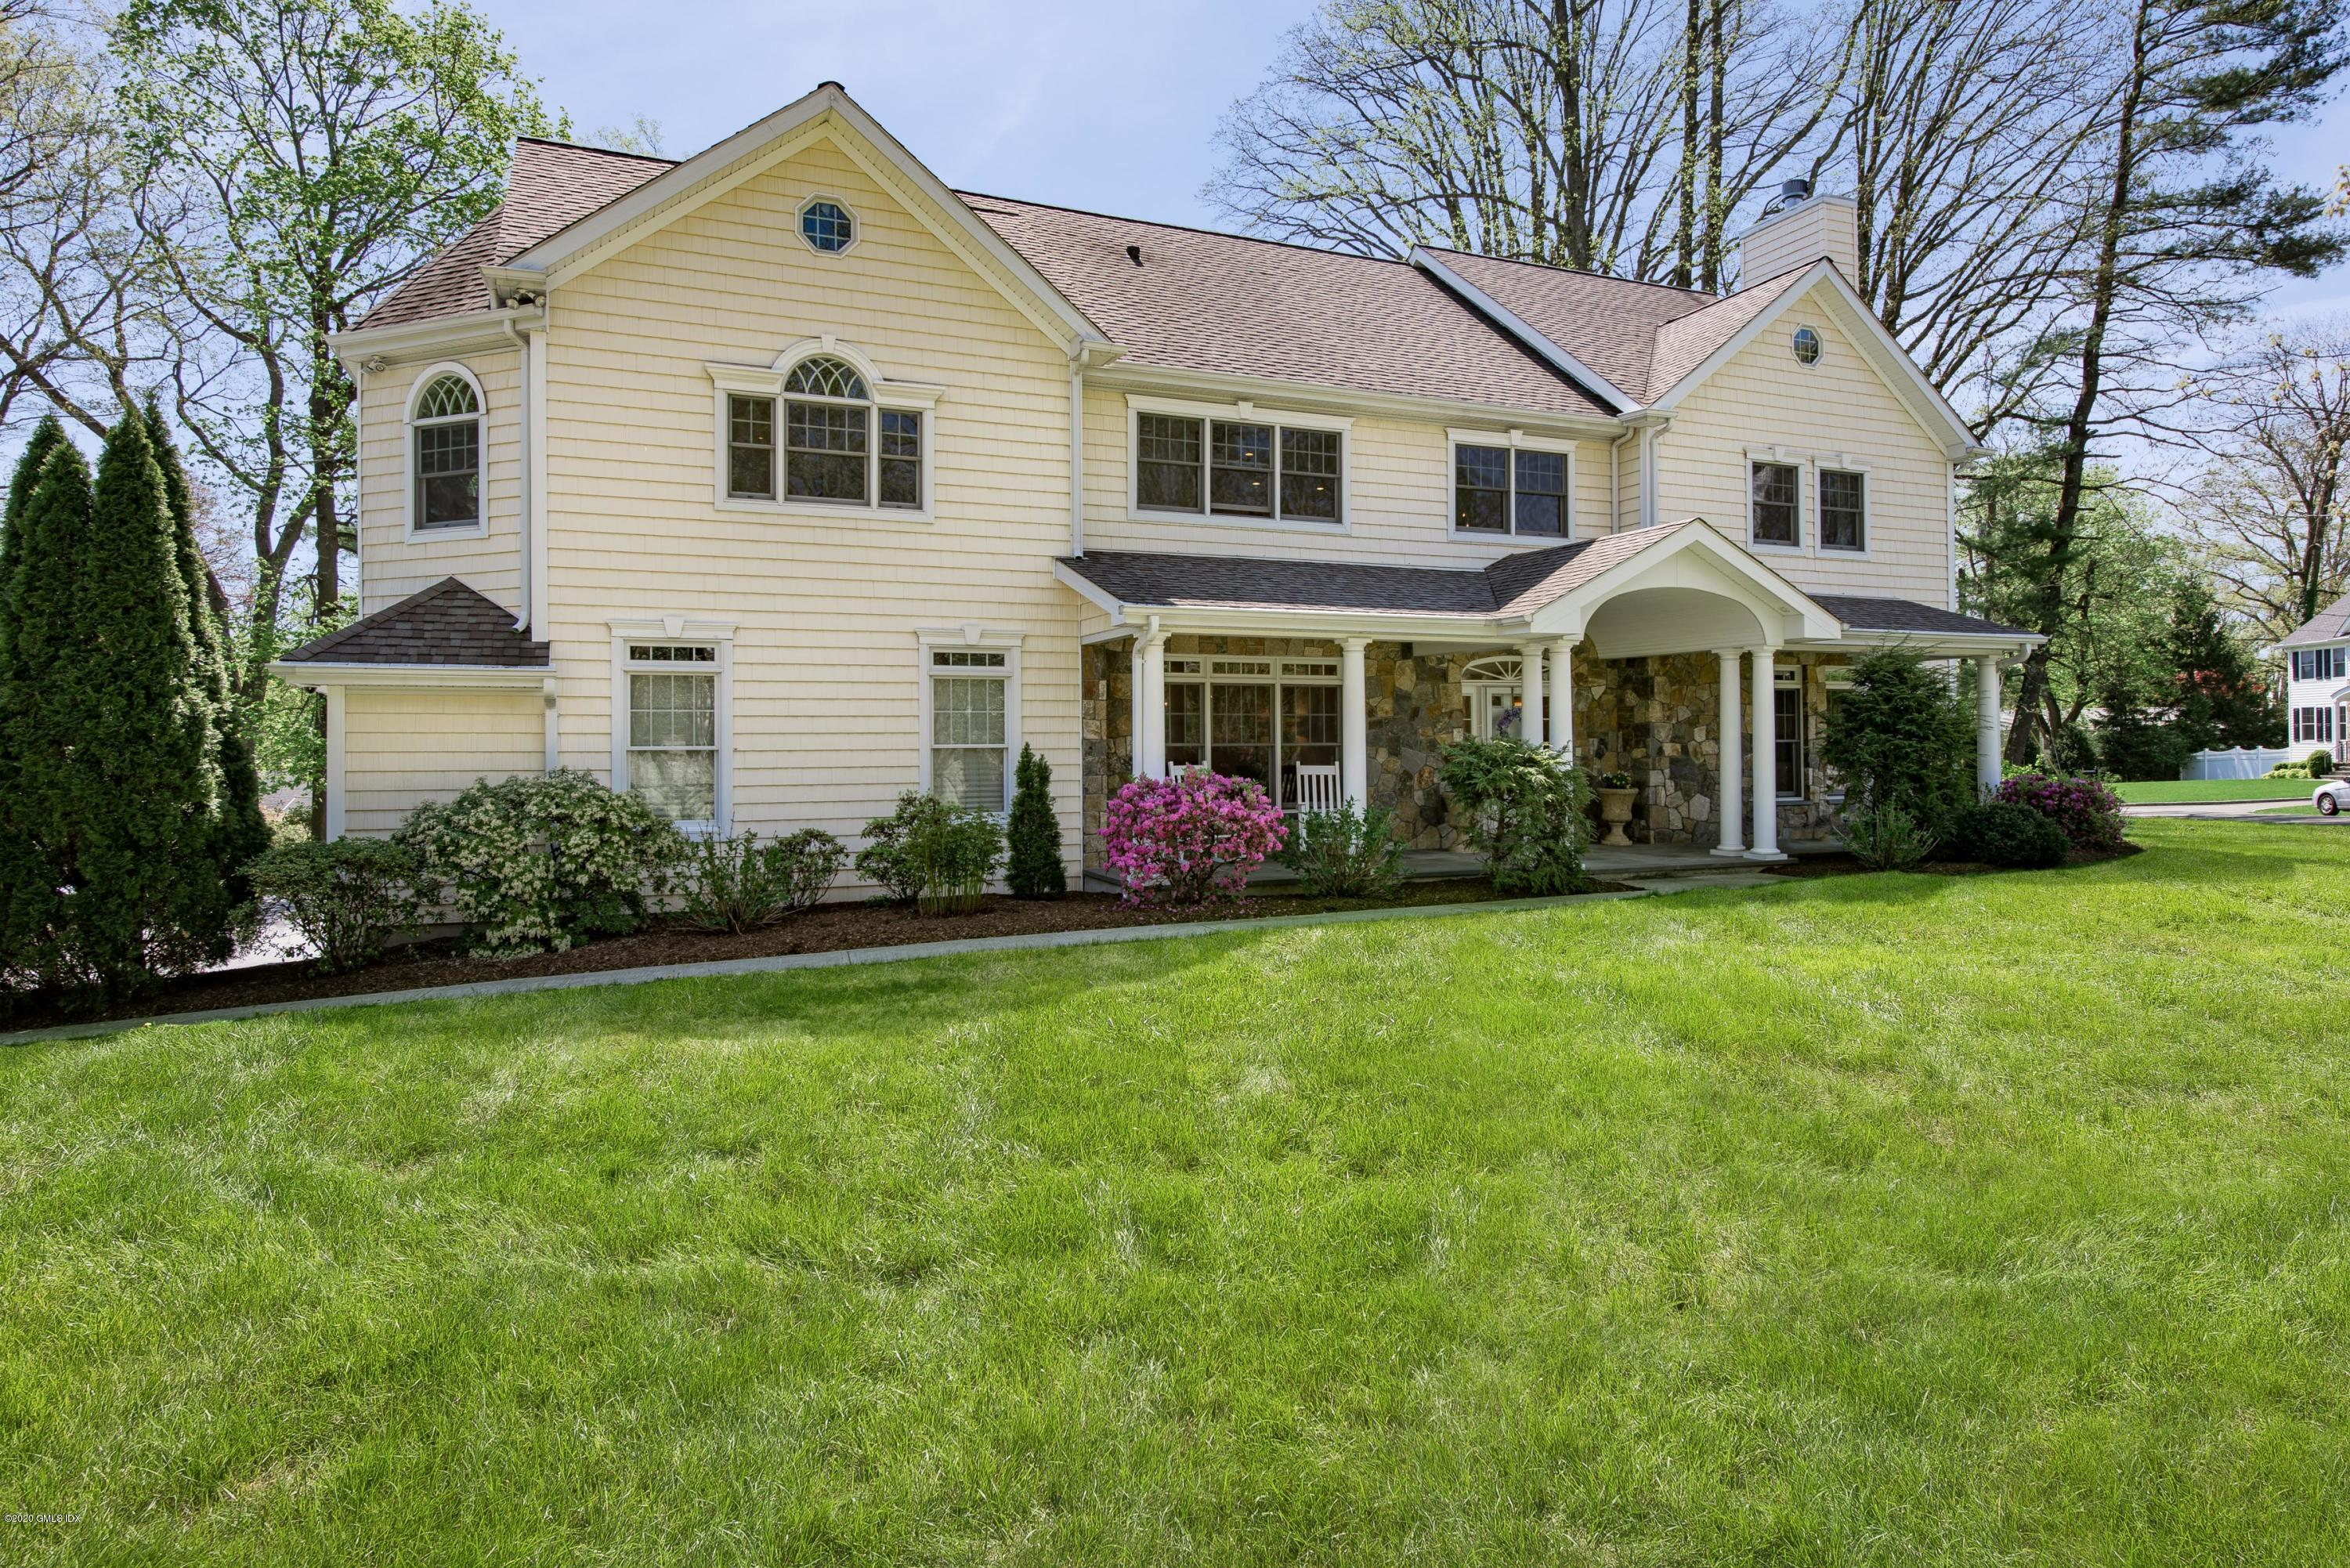 200 Palmer Hill Road, Old Greenwich, Connecticut 06870, 5 Bedrooms Bedrooms, ,5 BathroomsBathrooms,Single family,For sale,Palmer Hill,109677